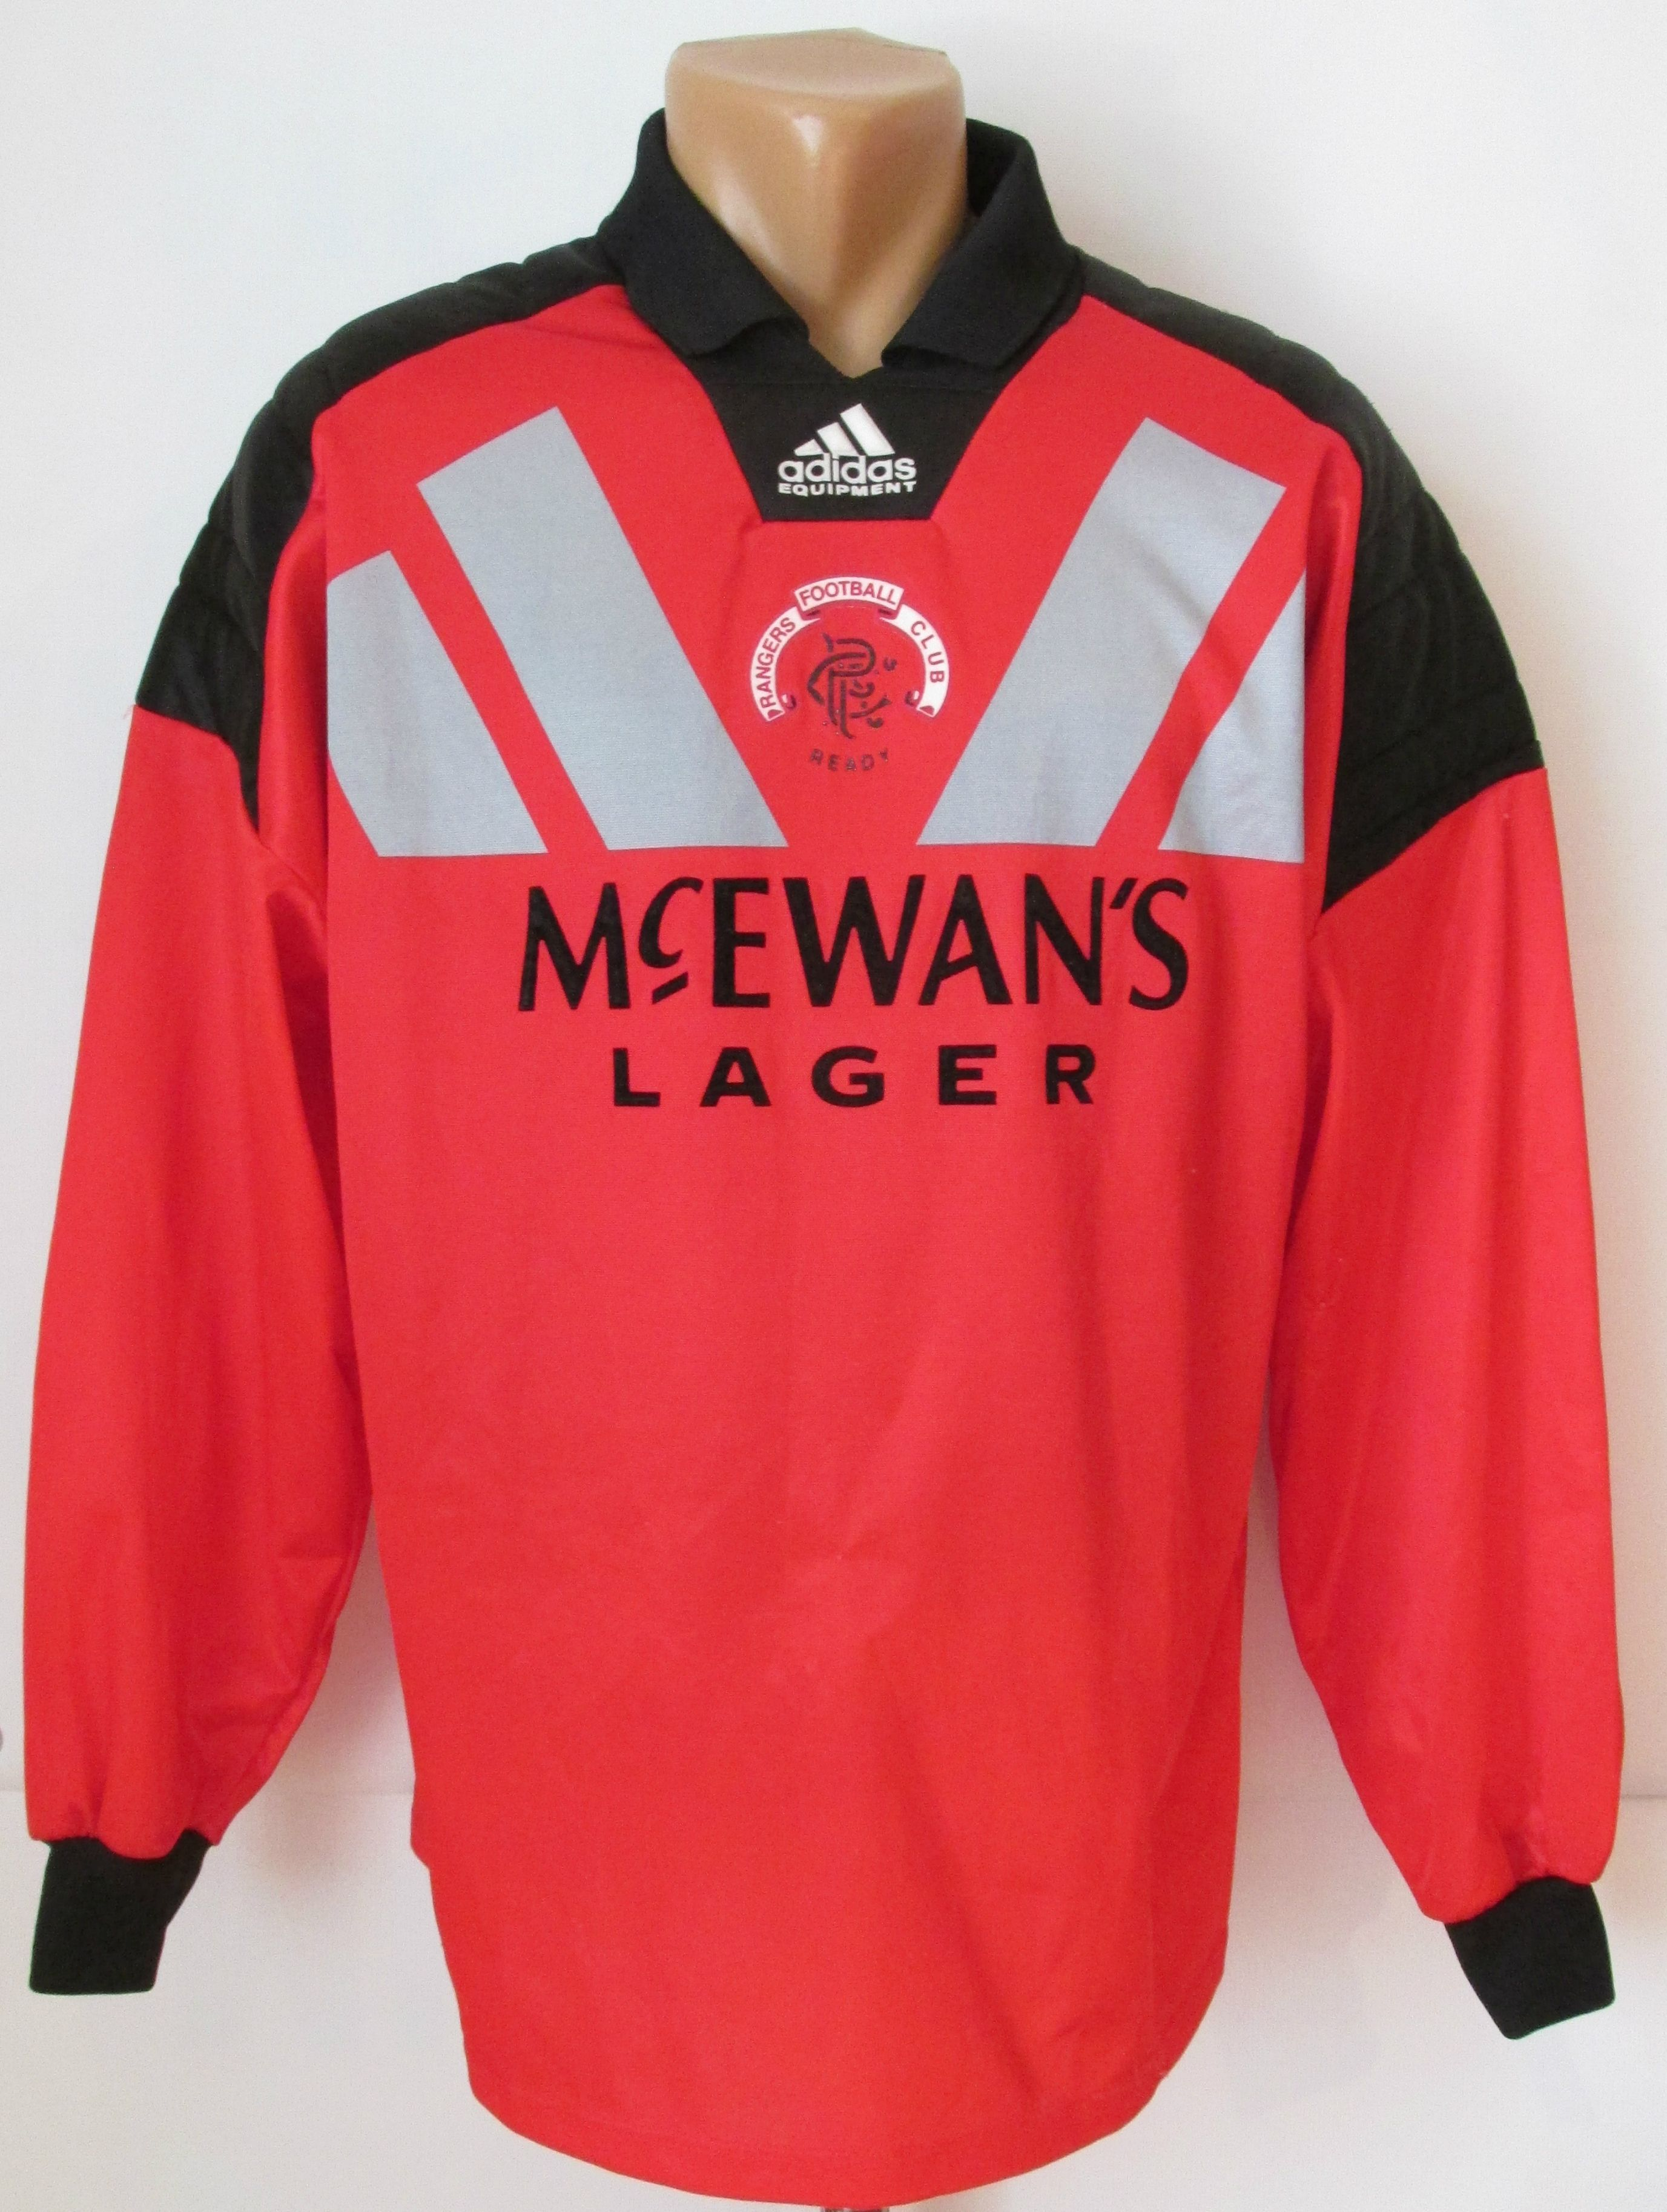 3afee17d0 Rangers Glasgow 1992 1993 1994 goalkeeper football shirt by Adidas RFC Gers  Scotland vintage 90s retro soccer jersey  Rangers  glasgow  adidas  vintage   90s ...